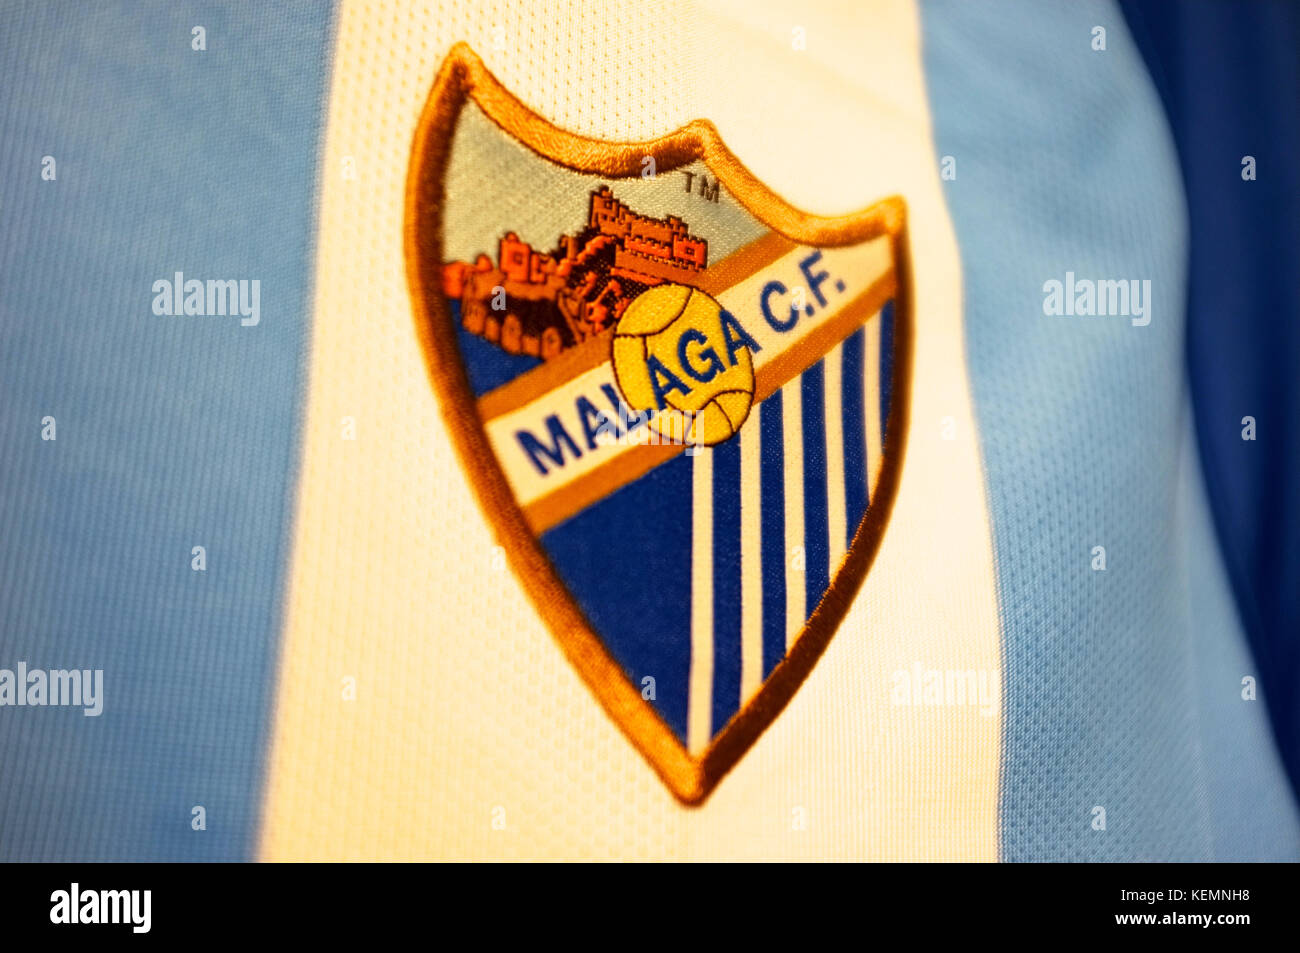 The crest of Malaga CF on a shirt in the club shop at La Rosaleda Stadium, Malaga, Andalucia, Spain, September 2017 - Stock Image